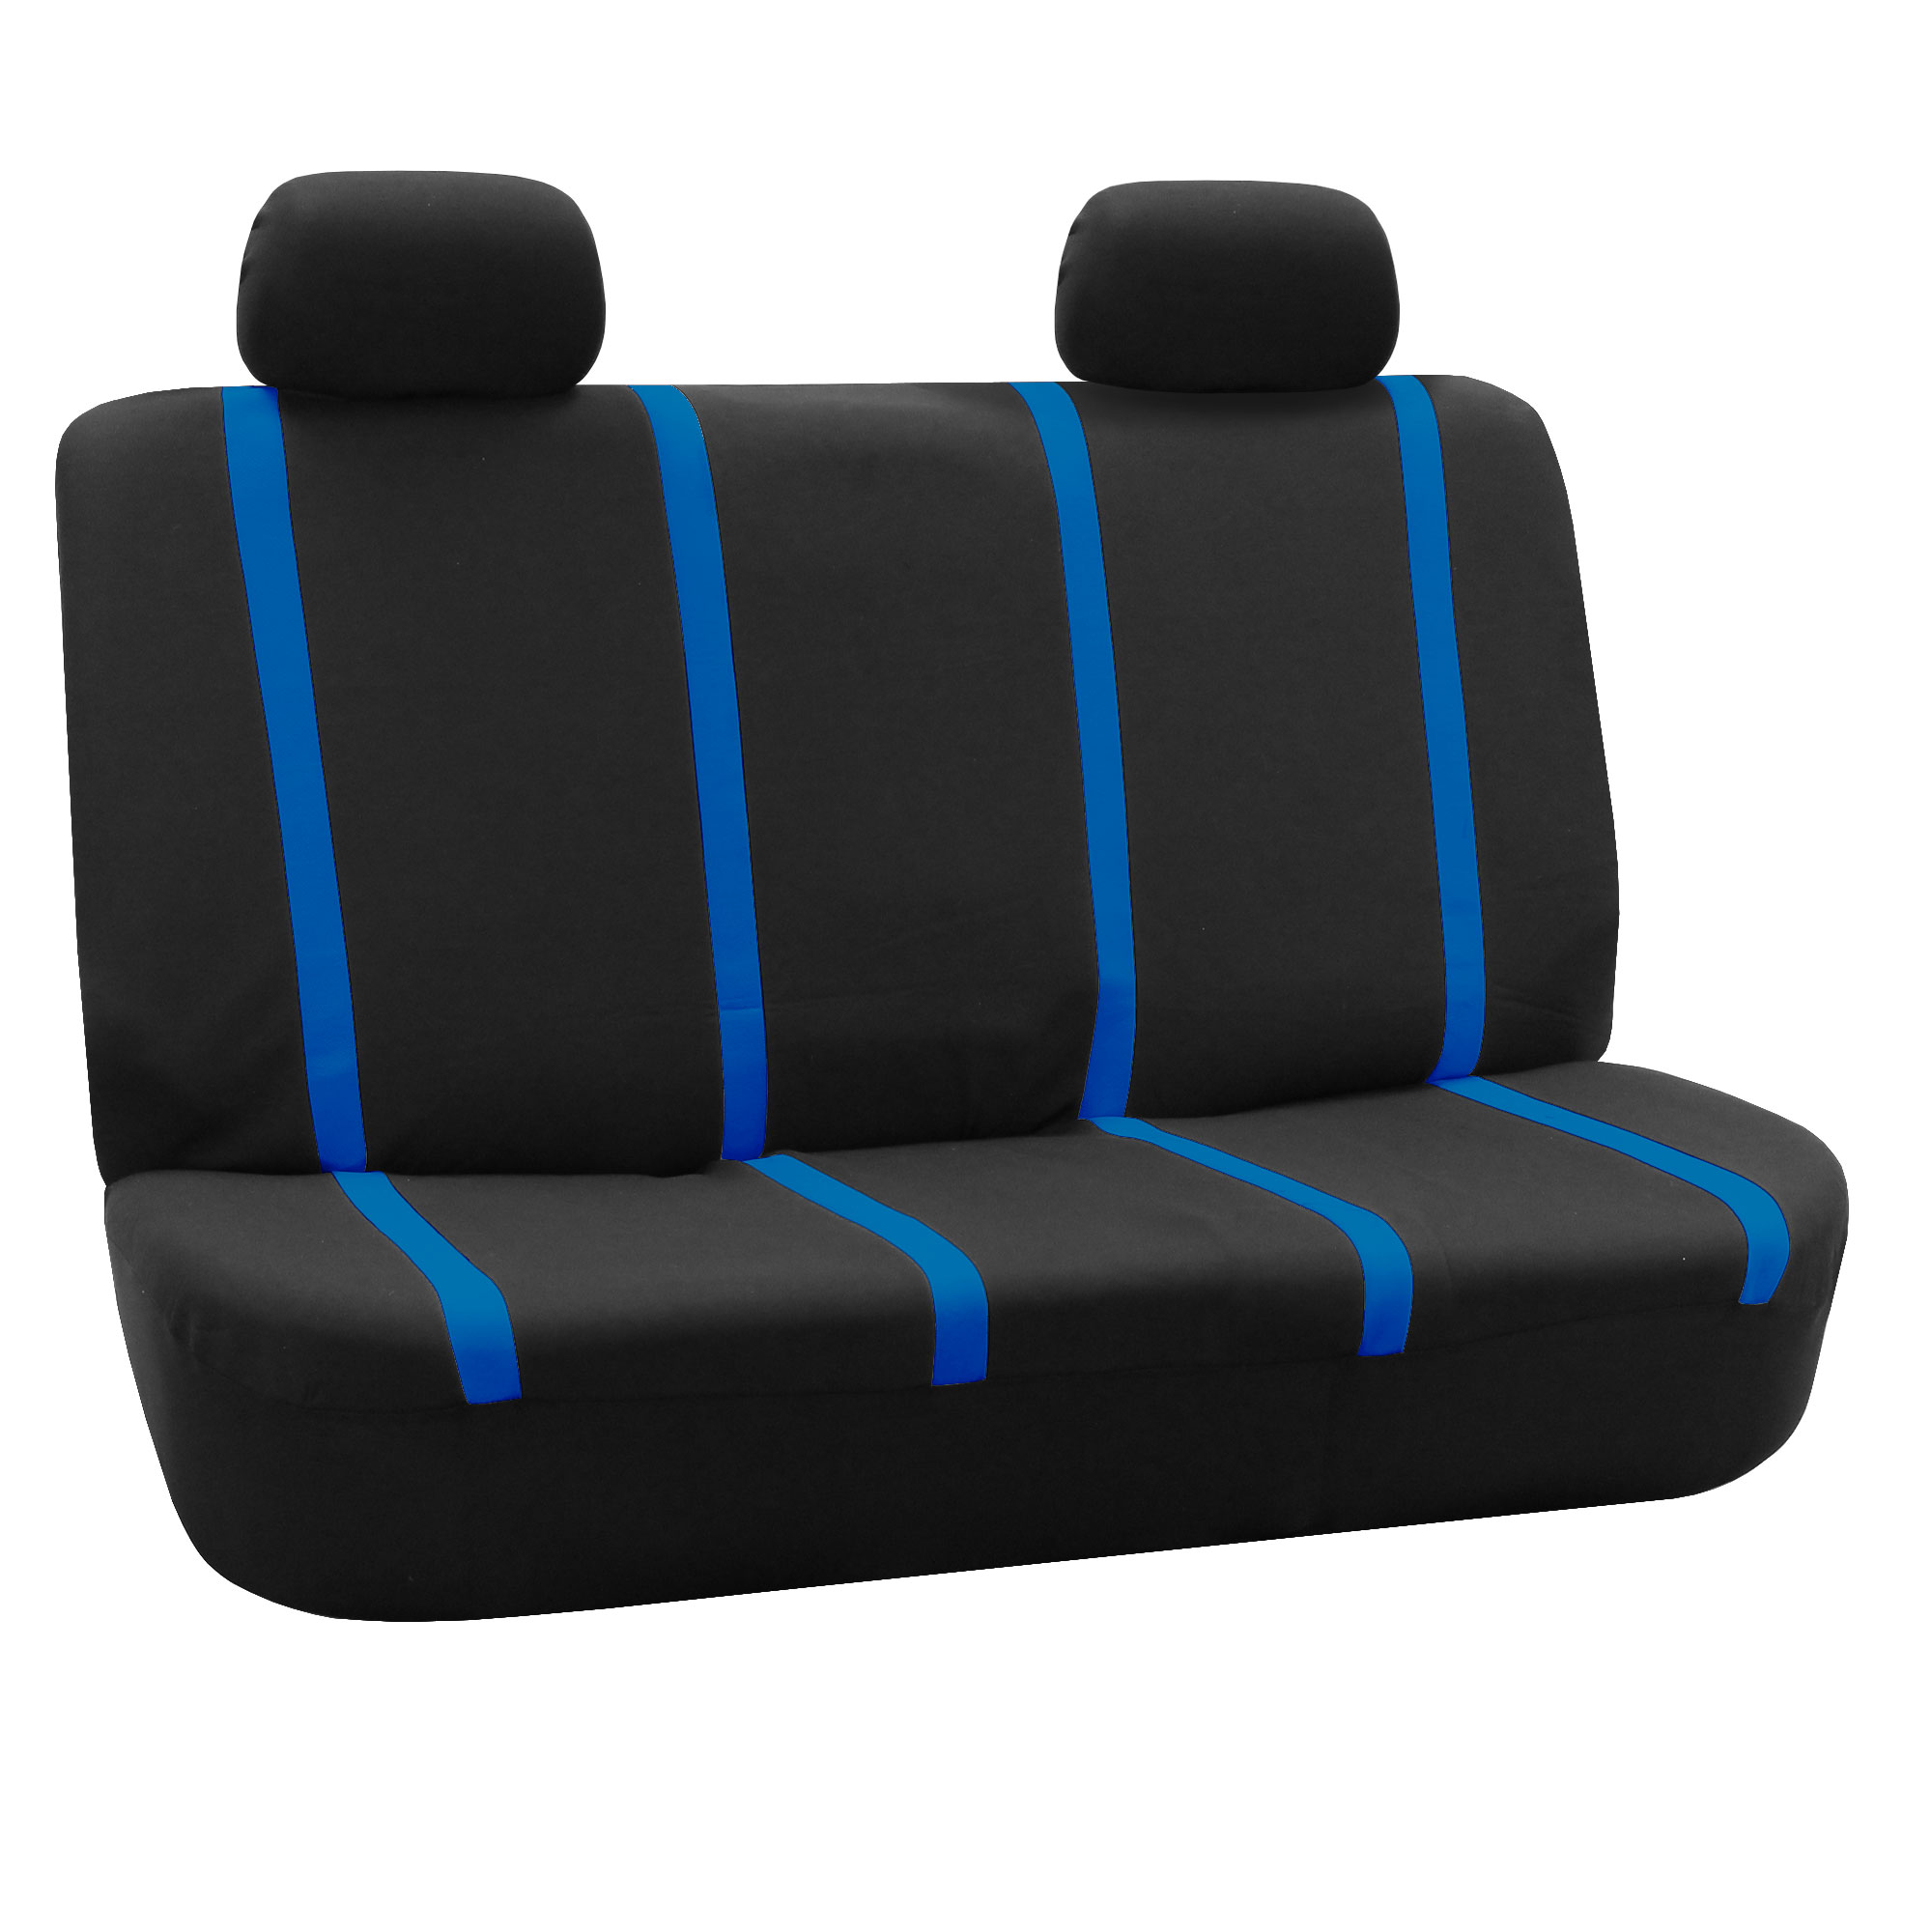 Car Seat Covers Blue Black Set for Auto W head Rests Tissue